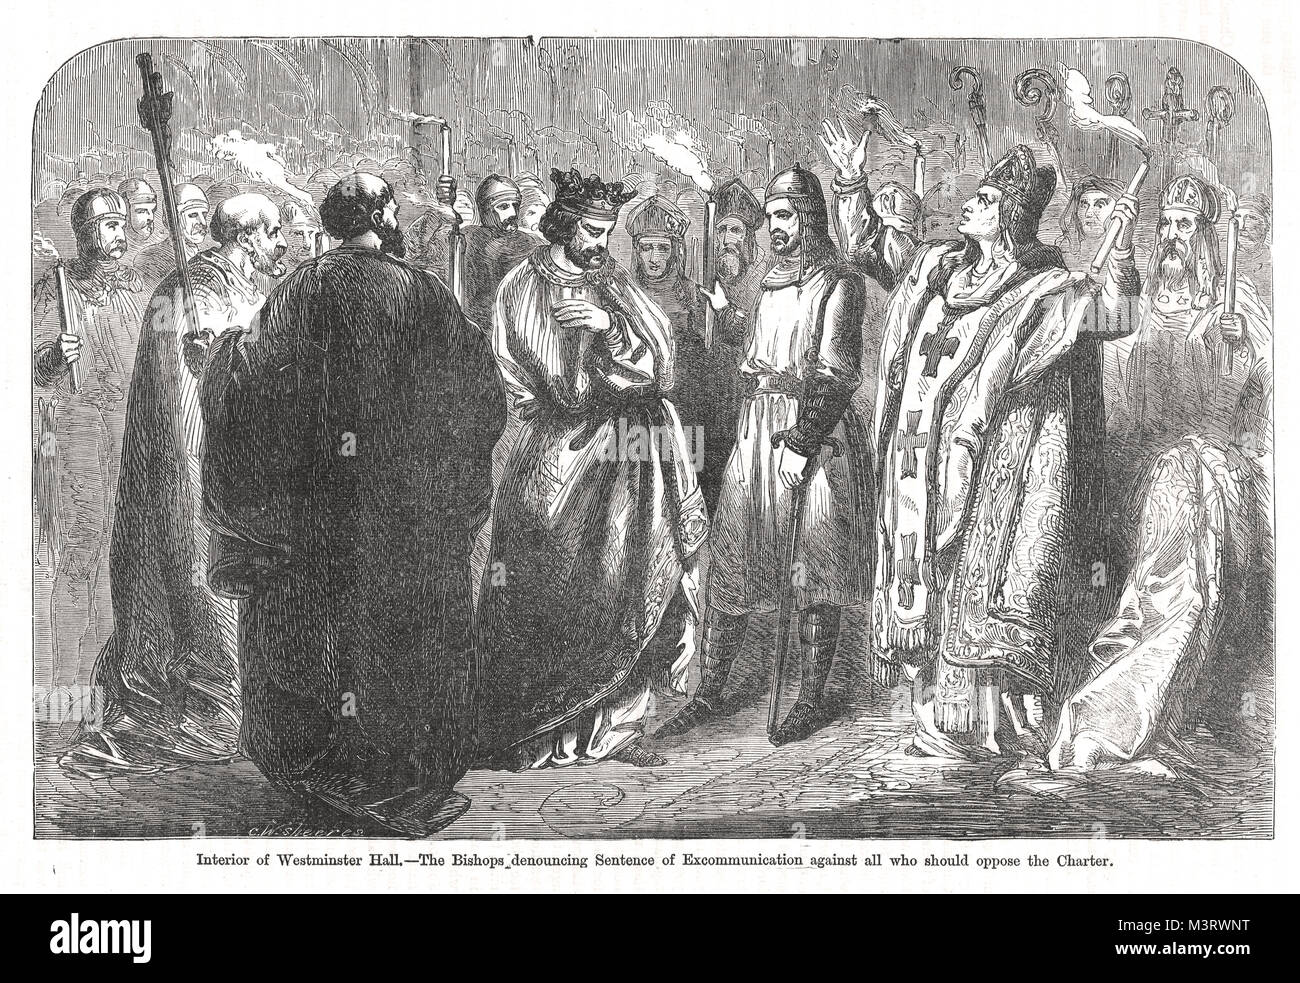 Bishops in Westminster Hall, denouncing the papal sentence of excommunication, forcing Henry III to reaffirm the - Stock Image